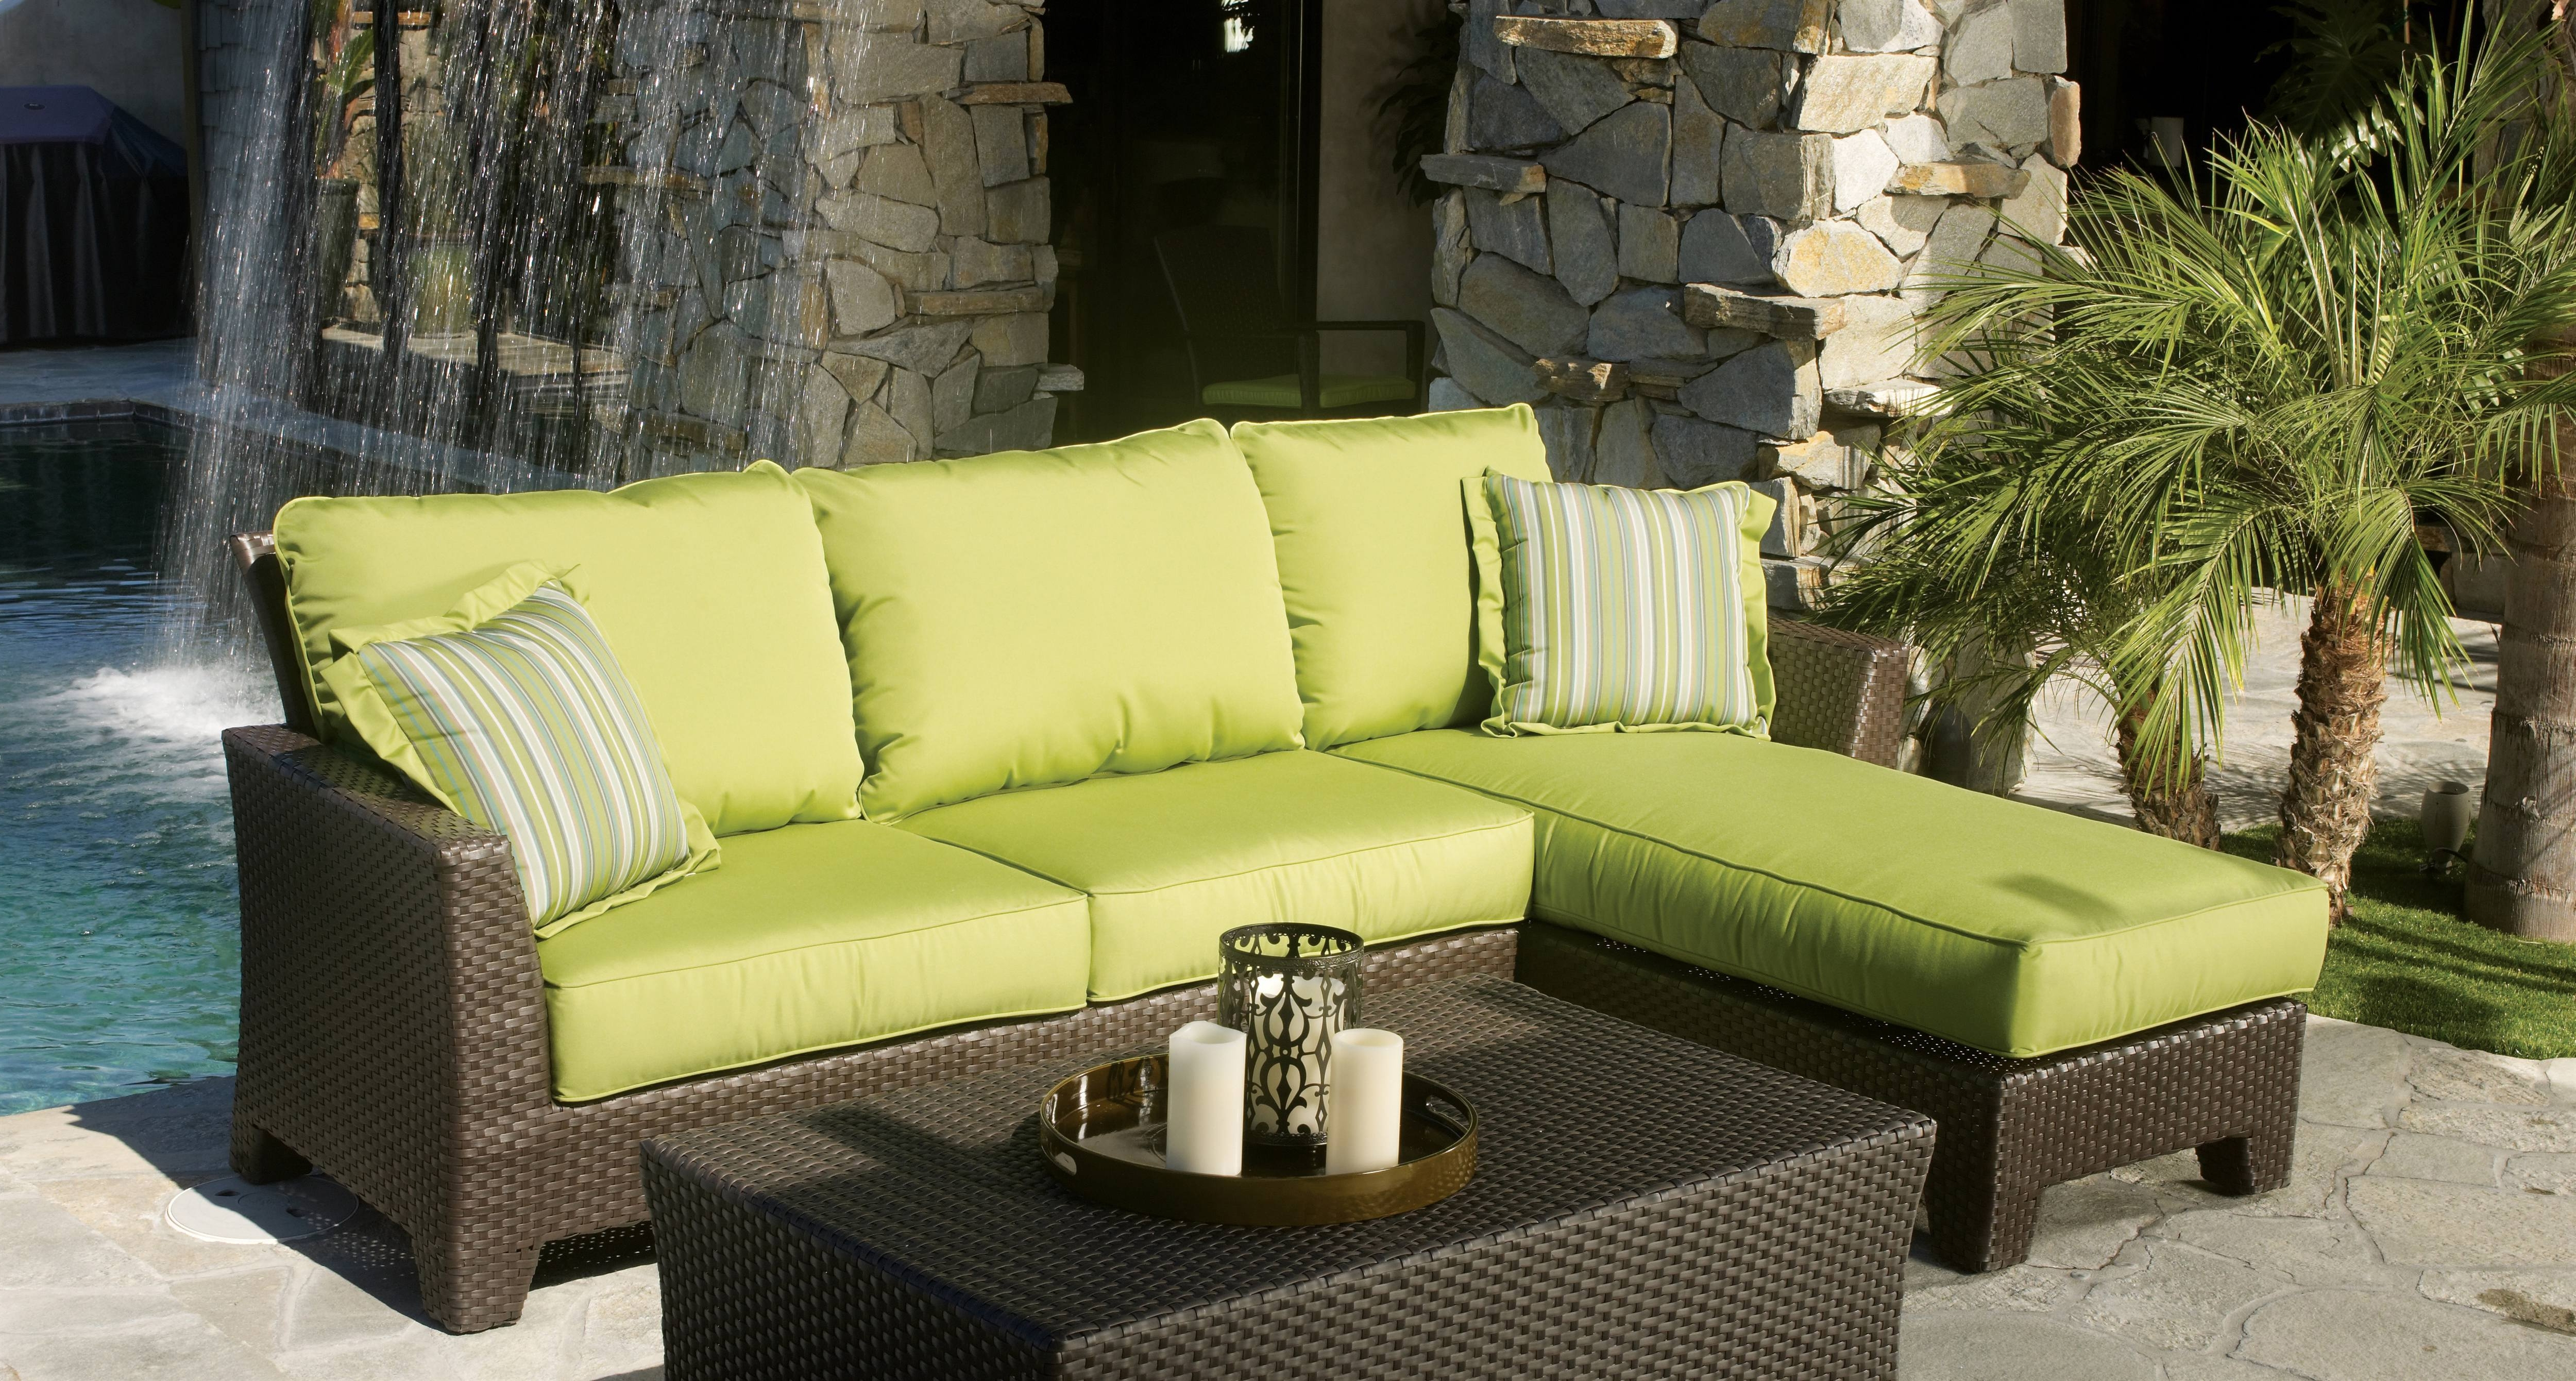 Feel The Grace Of Your Interior With Long Sectional Sofa Clearance Intended For Well Liked Clearance Sectional Sofas (View 10 of 20)